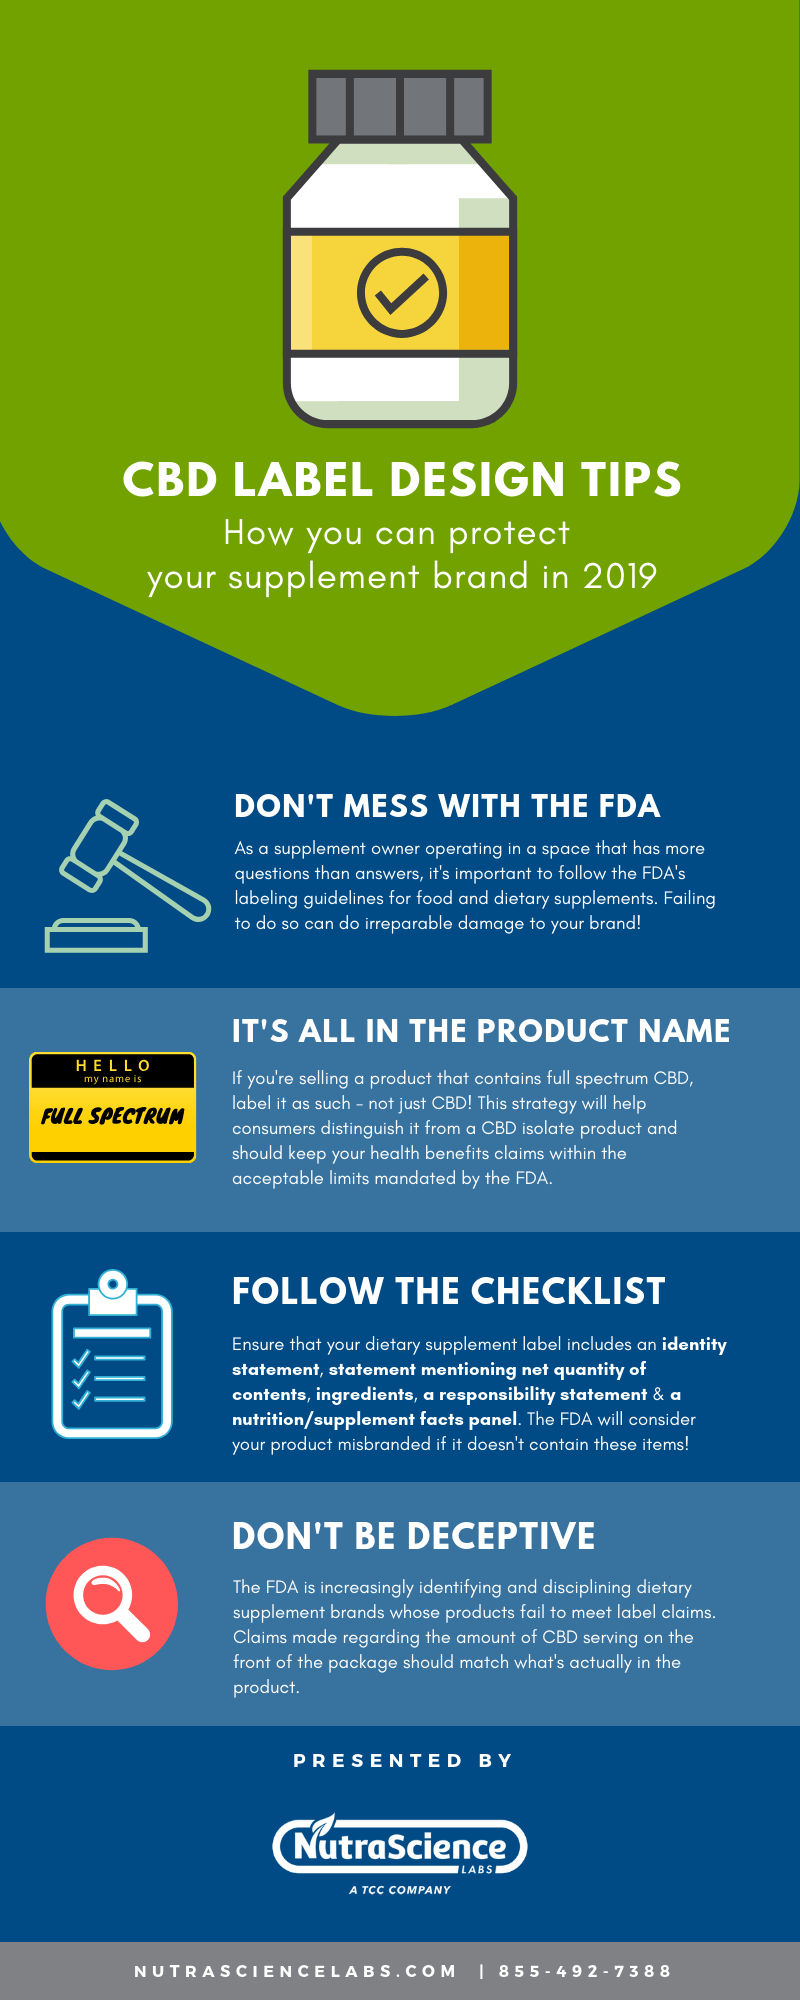 CBD Supplement Label Design - Infographic